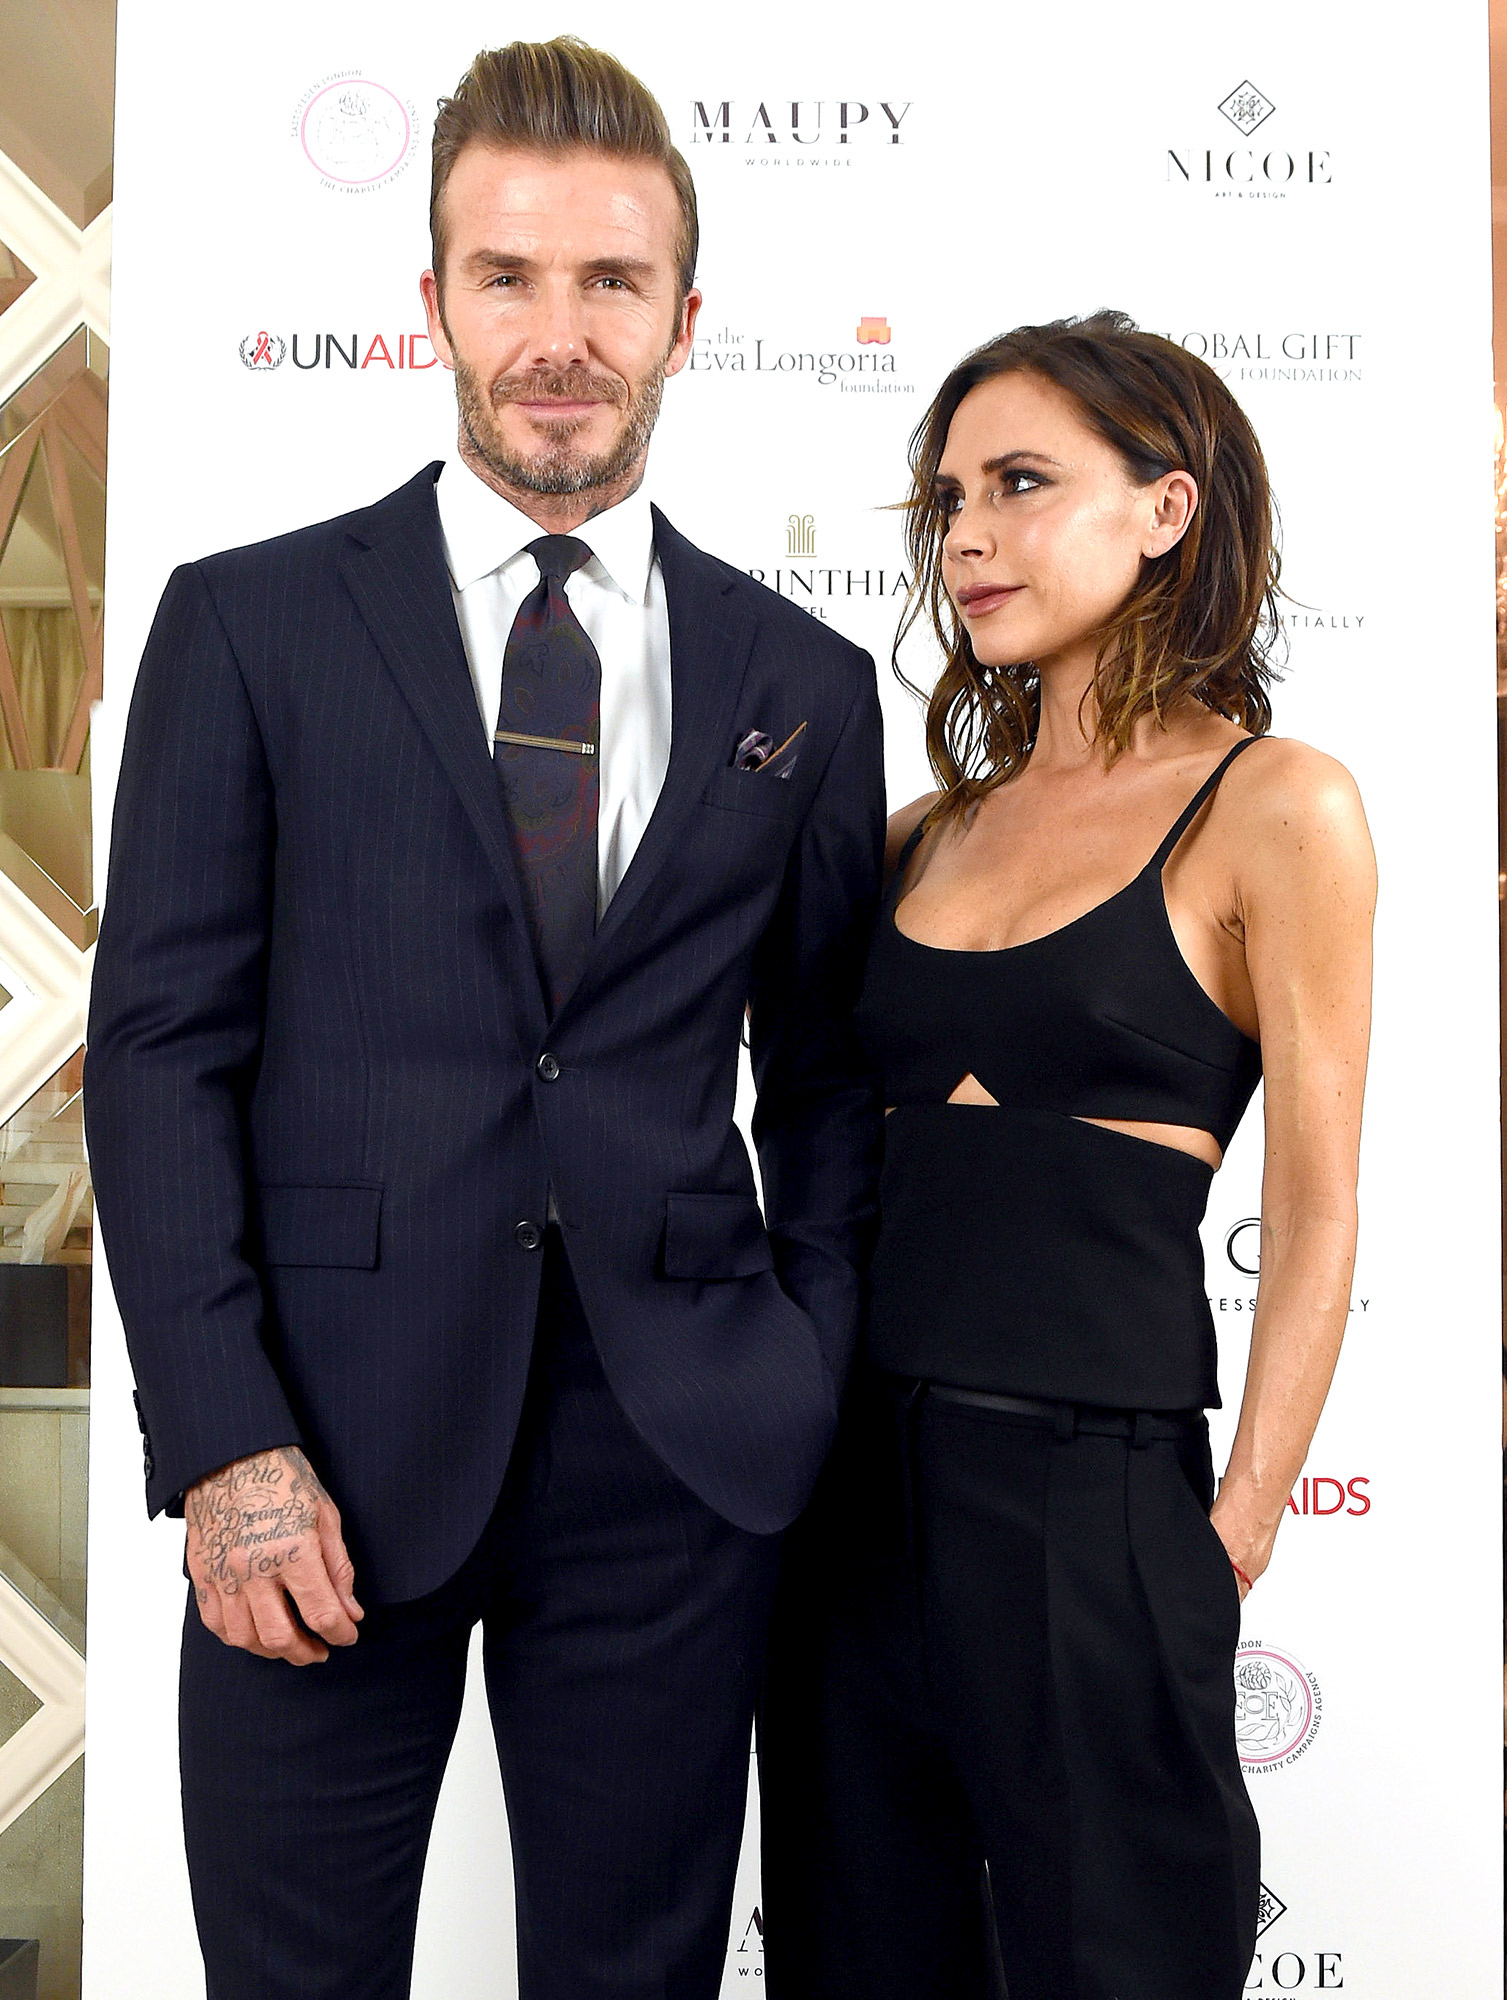 David Beckham and Victoria Beckham attend the Global Gift Gala in partnership with Quintessentially on November 19, 2016 at the Corithinia Hotel in London, United Kingdom.